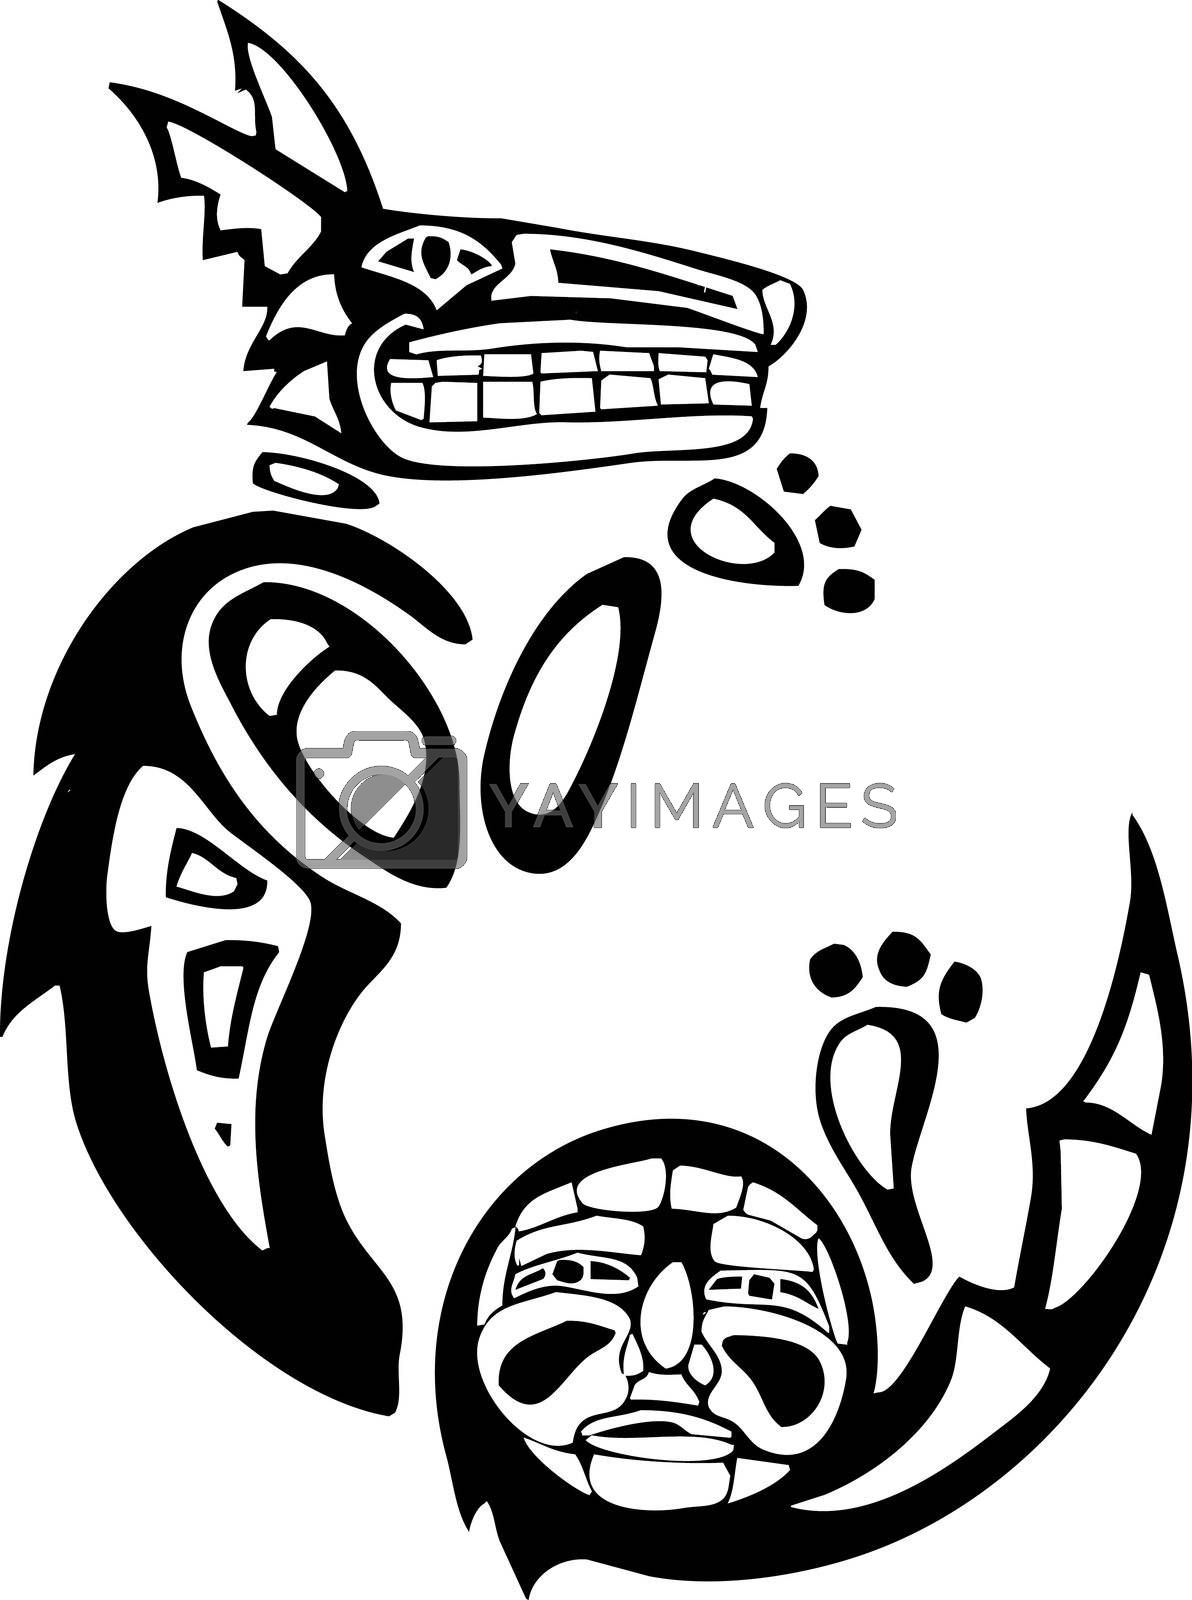 Curled Mythical Coyote rendered in Northwest Coast Native style.